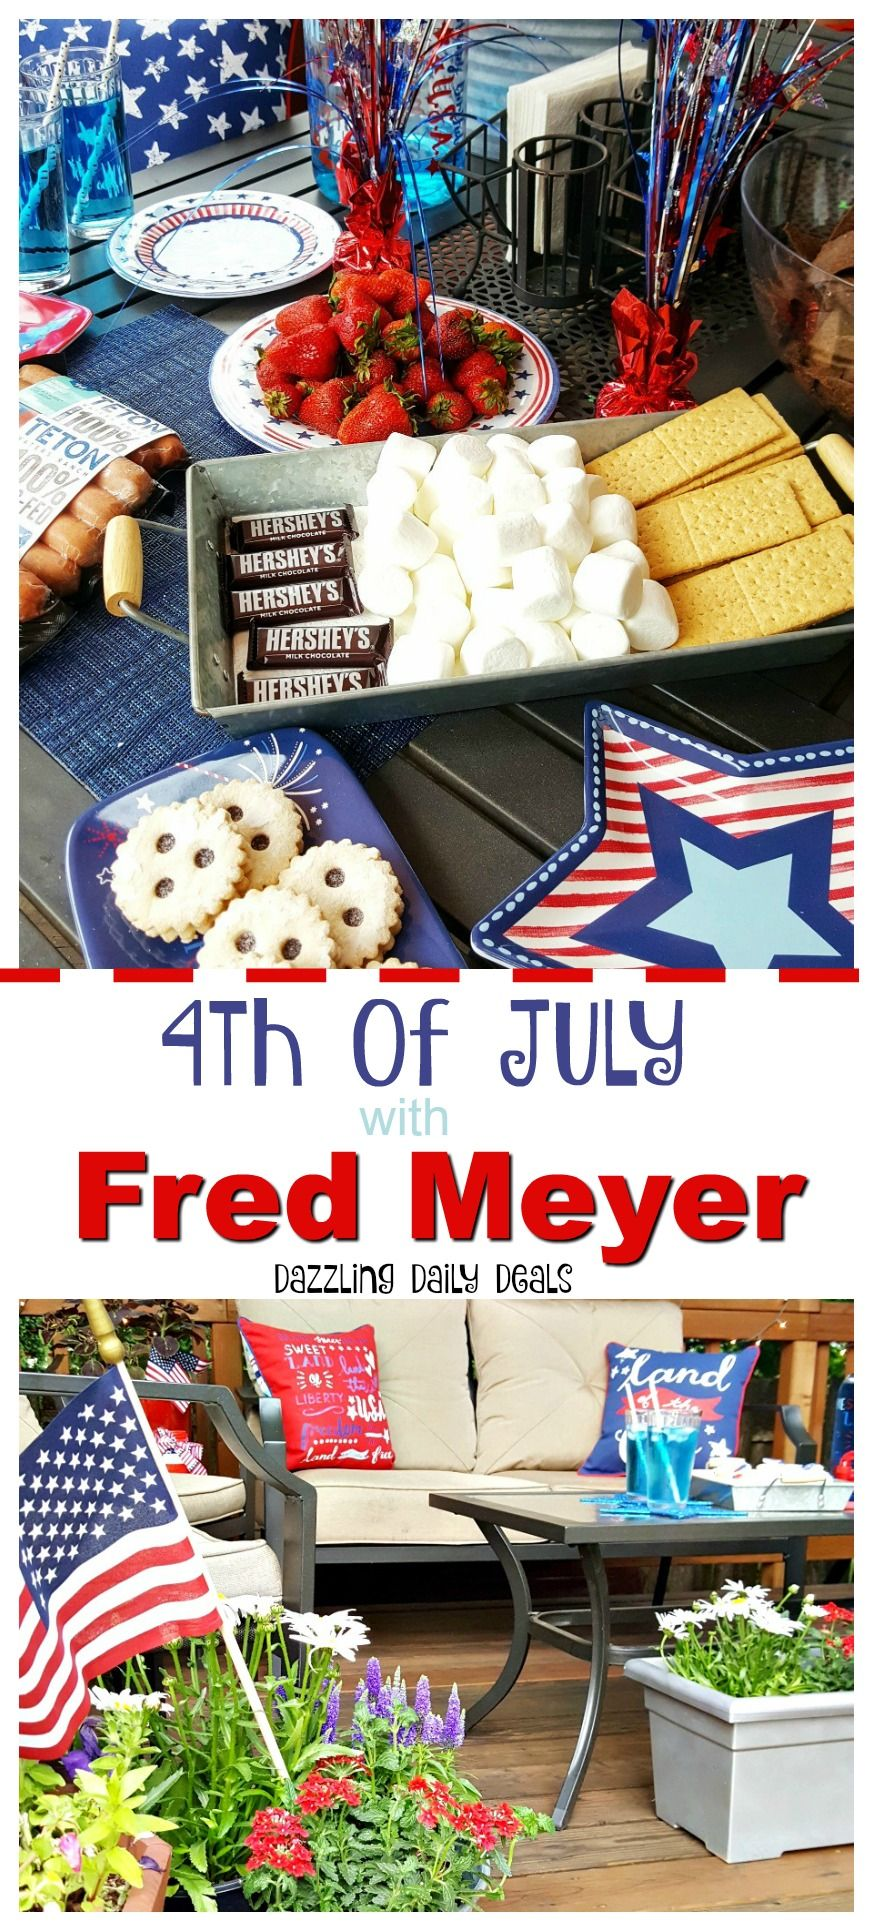 Get everything you need to be summer party ready at fred